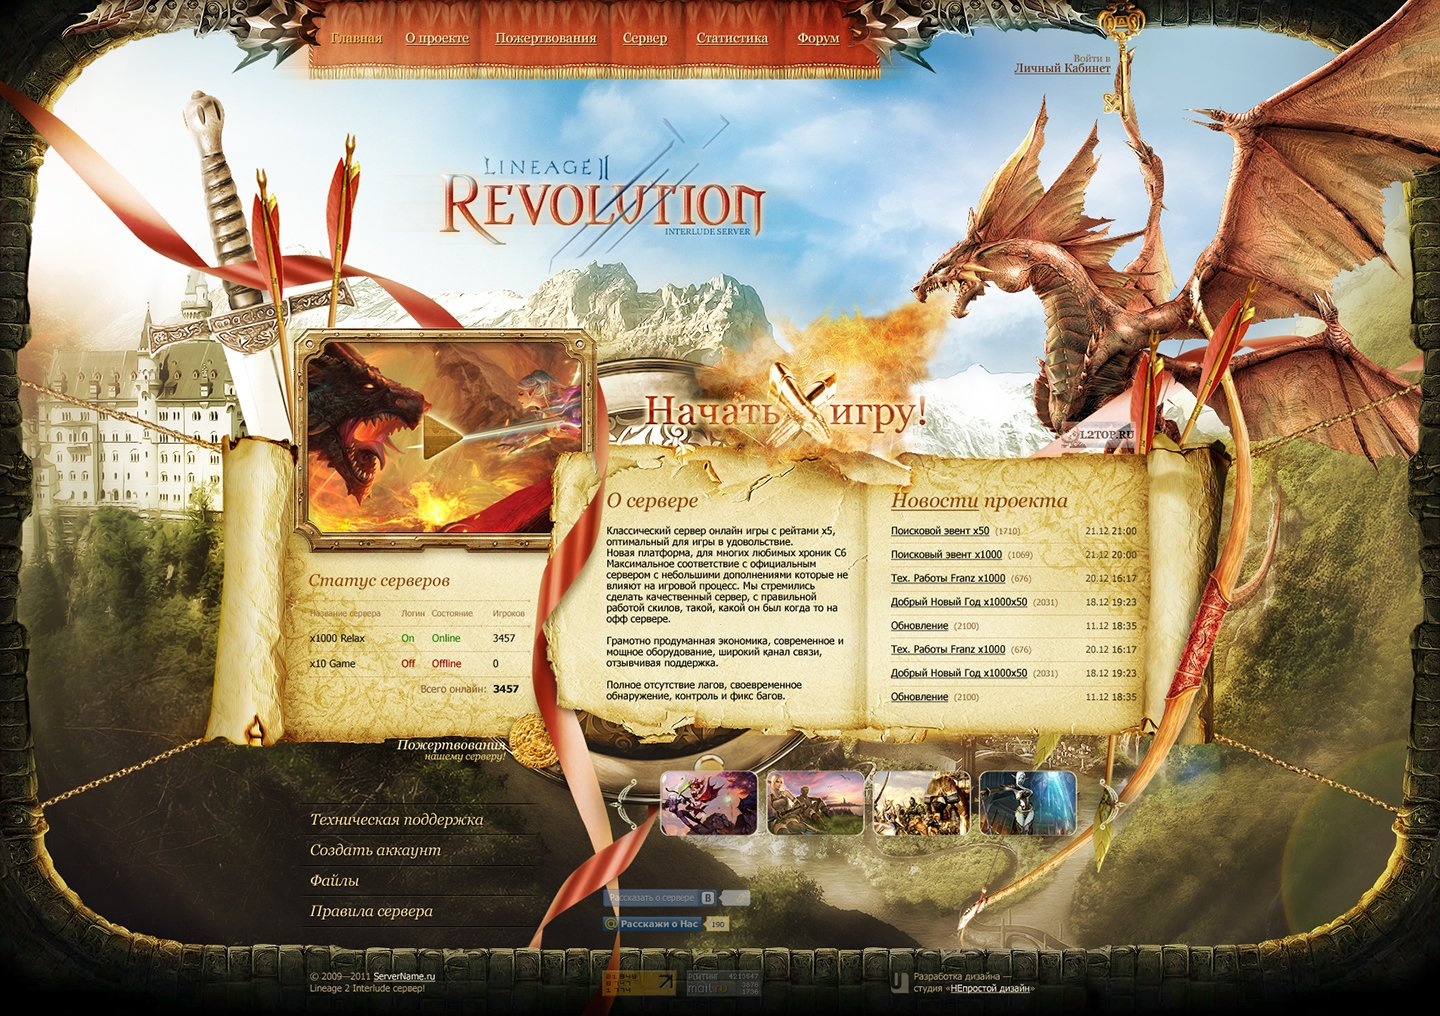 L2Revolution > Website design for Lineage 2 private server. Main page